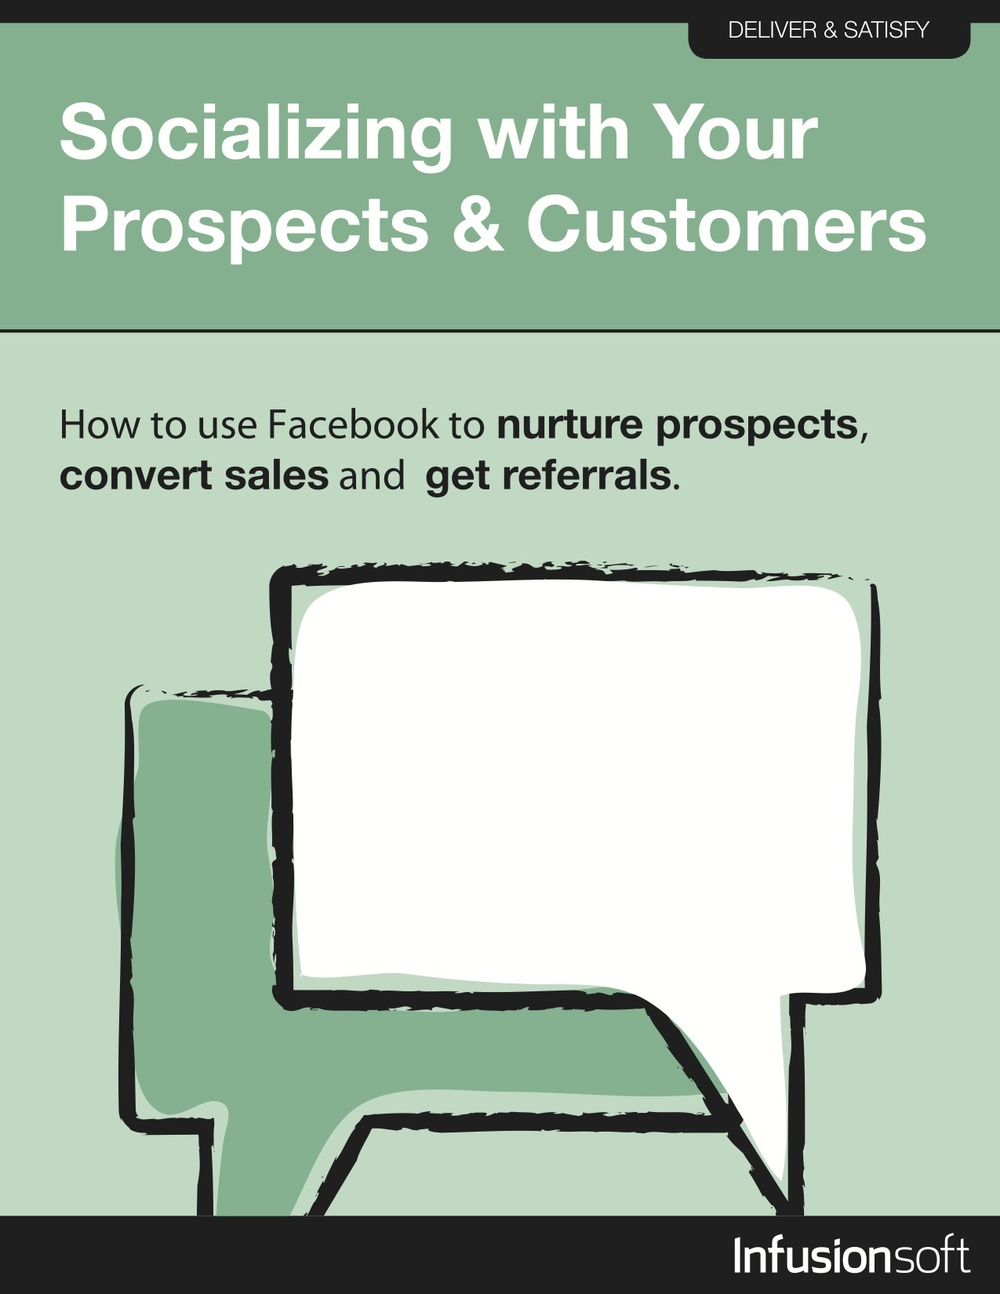 "What You'll Learn:         This growth strategy will walk you step by  step through the process of putting Facebook to work for your business.  You'll learn how to:    	  		Use questions to engage with readers  	  		Put a storefront on your Facebook page  	  		Encourage prospects and customers to share your content through Facebook  	  		Much more!            Excerpt:        As more and more people ""like"" you content, special  deals, or anything else that shows your brand, your trustworthiness  increases. Everyone who ""likes"" your brand automatically says to their  entire friend list that they are on board with you and your message.  That's pretty powerful advocacy.     Download Now    Sourced From:  Infusionsoft"